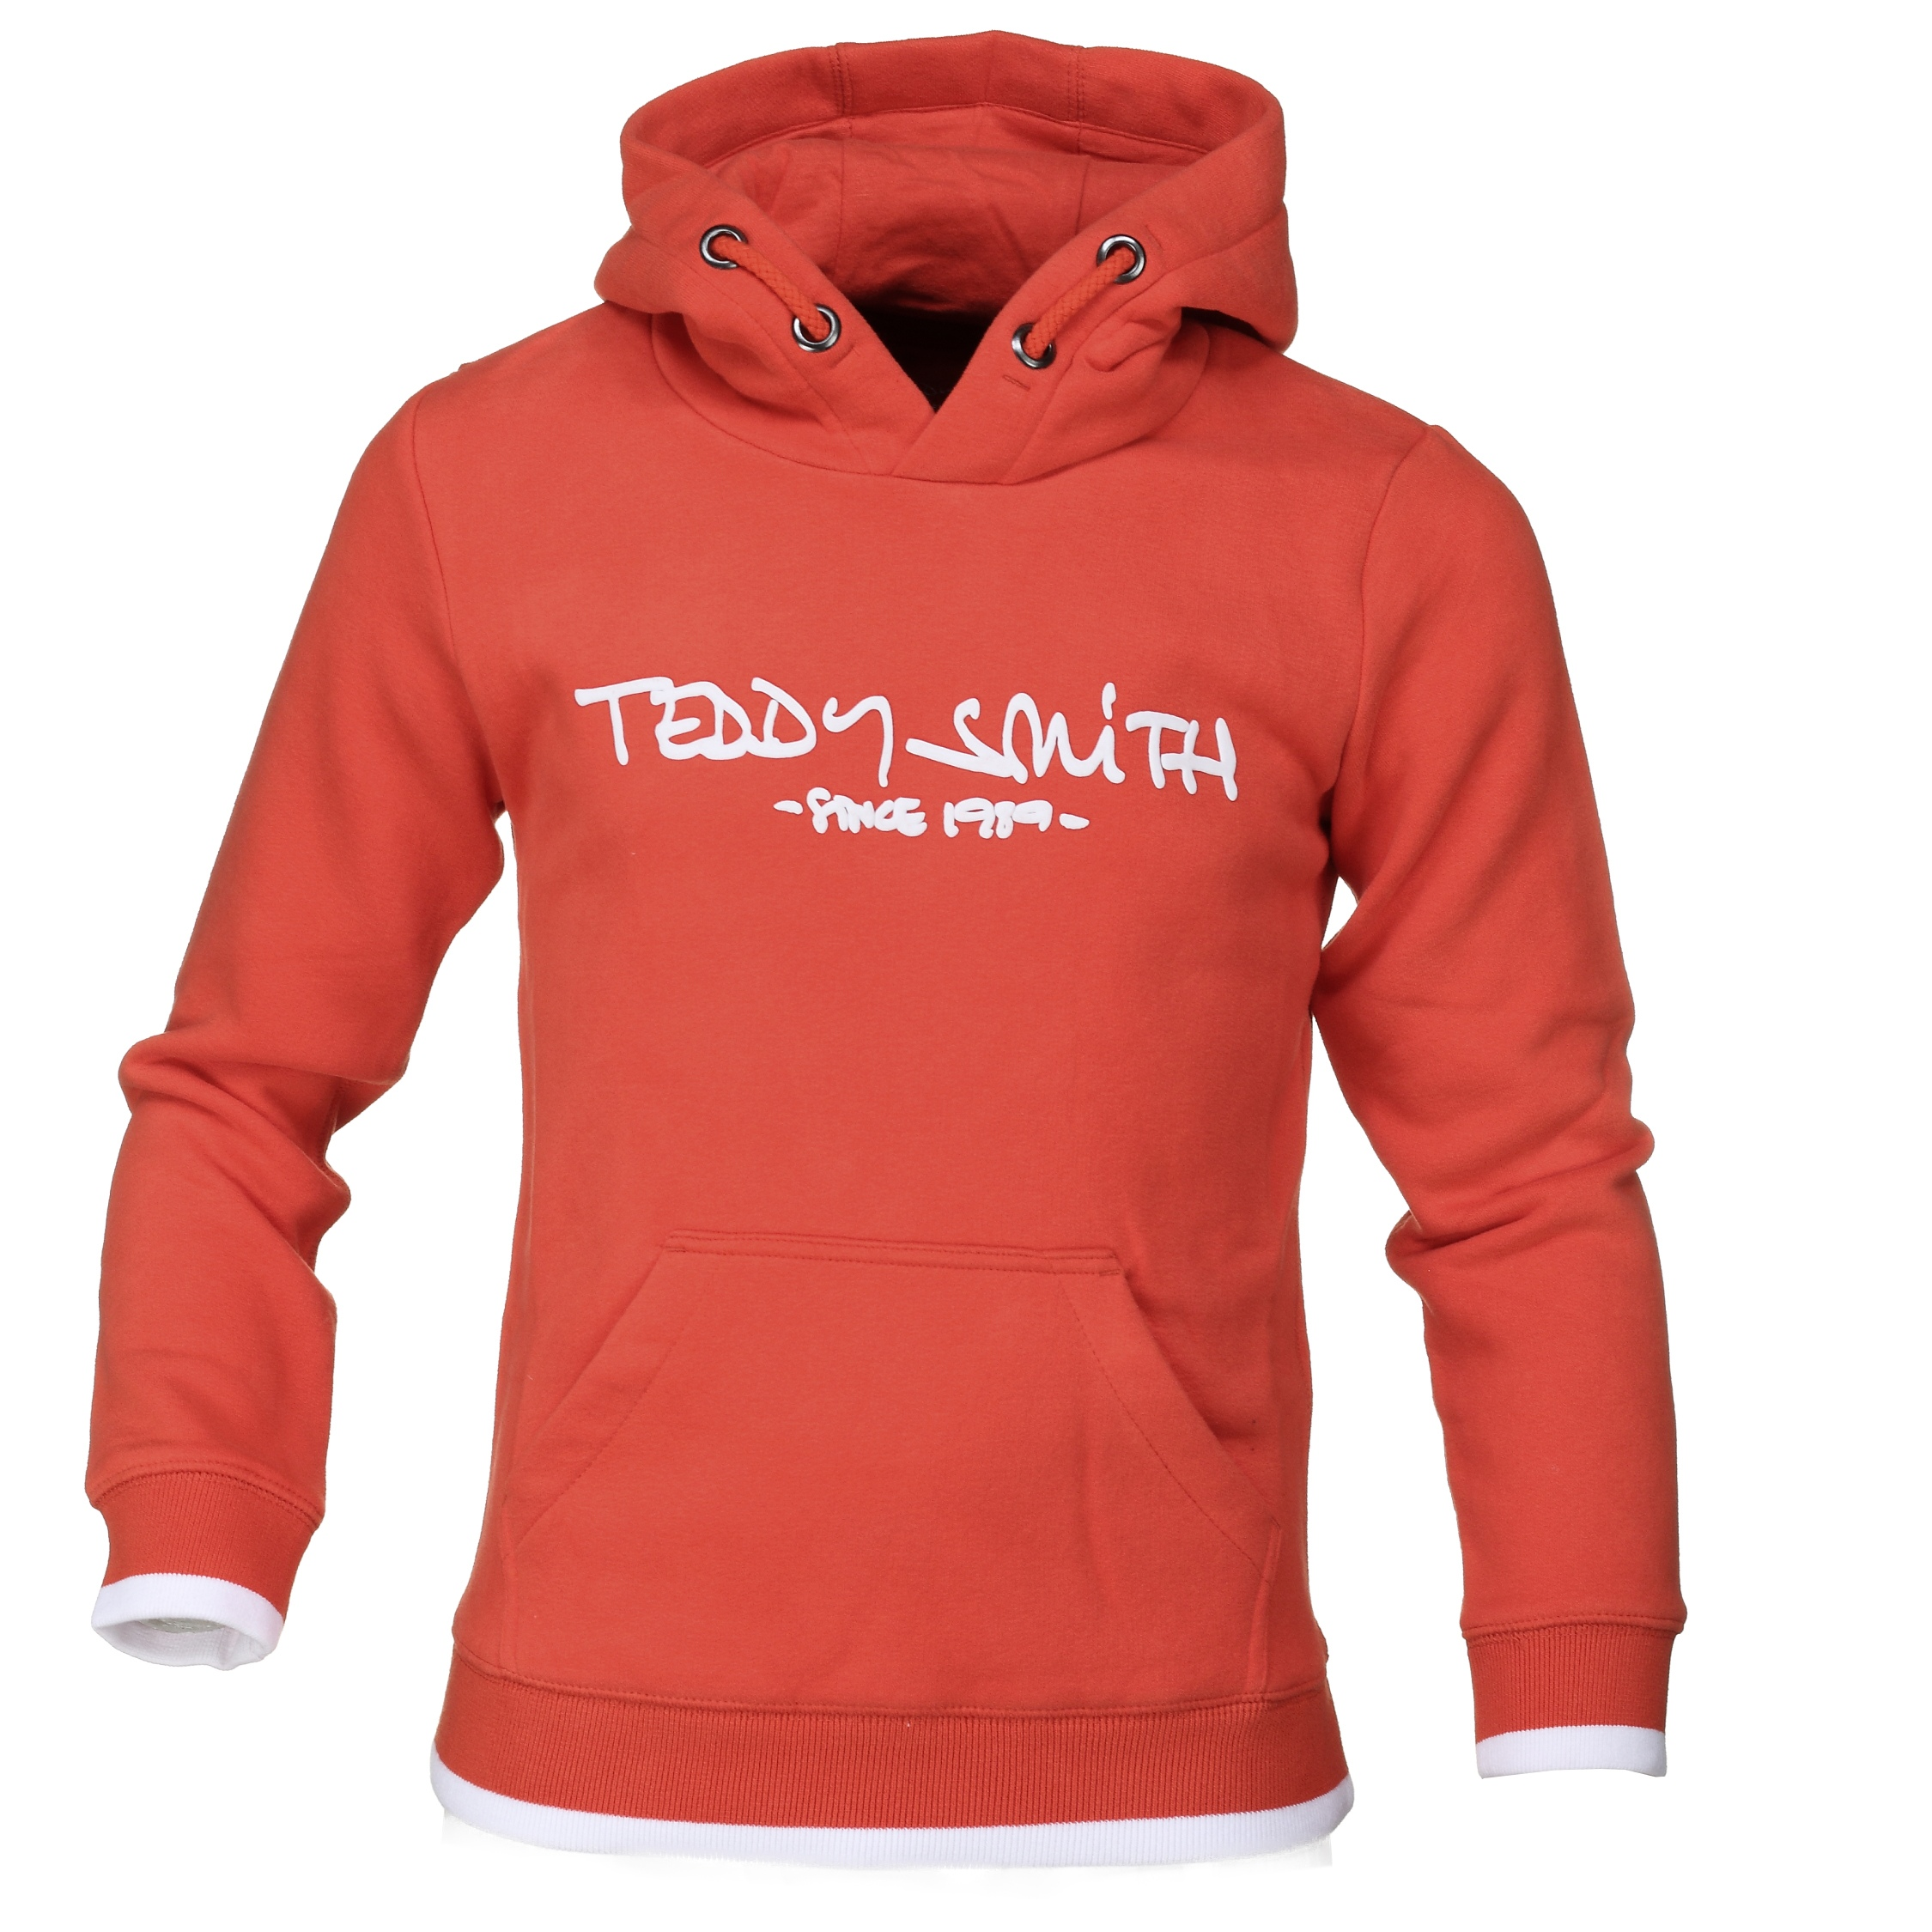 http://www.leadermode.com/175689/teddy-smith-siclass-hoody-jr-60815916-769b-orange-feu.jpg